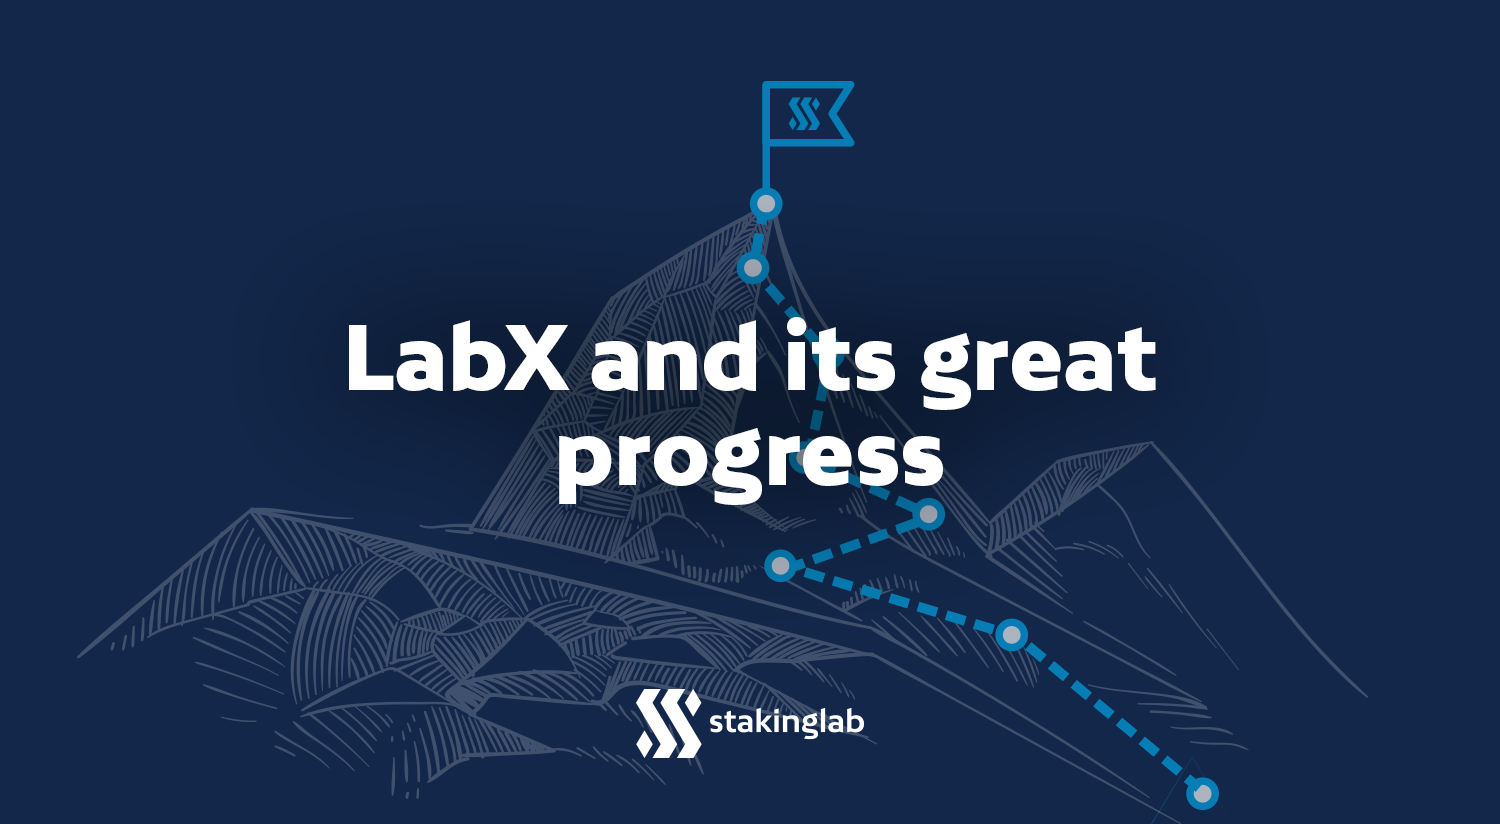 LabX Coin and its great progress